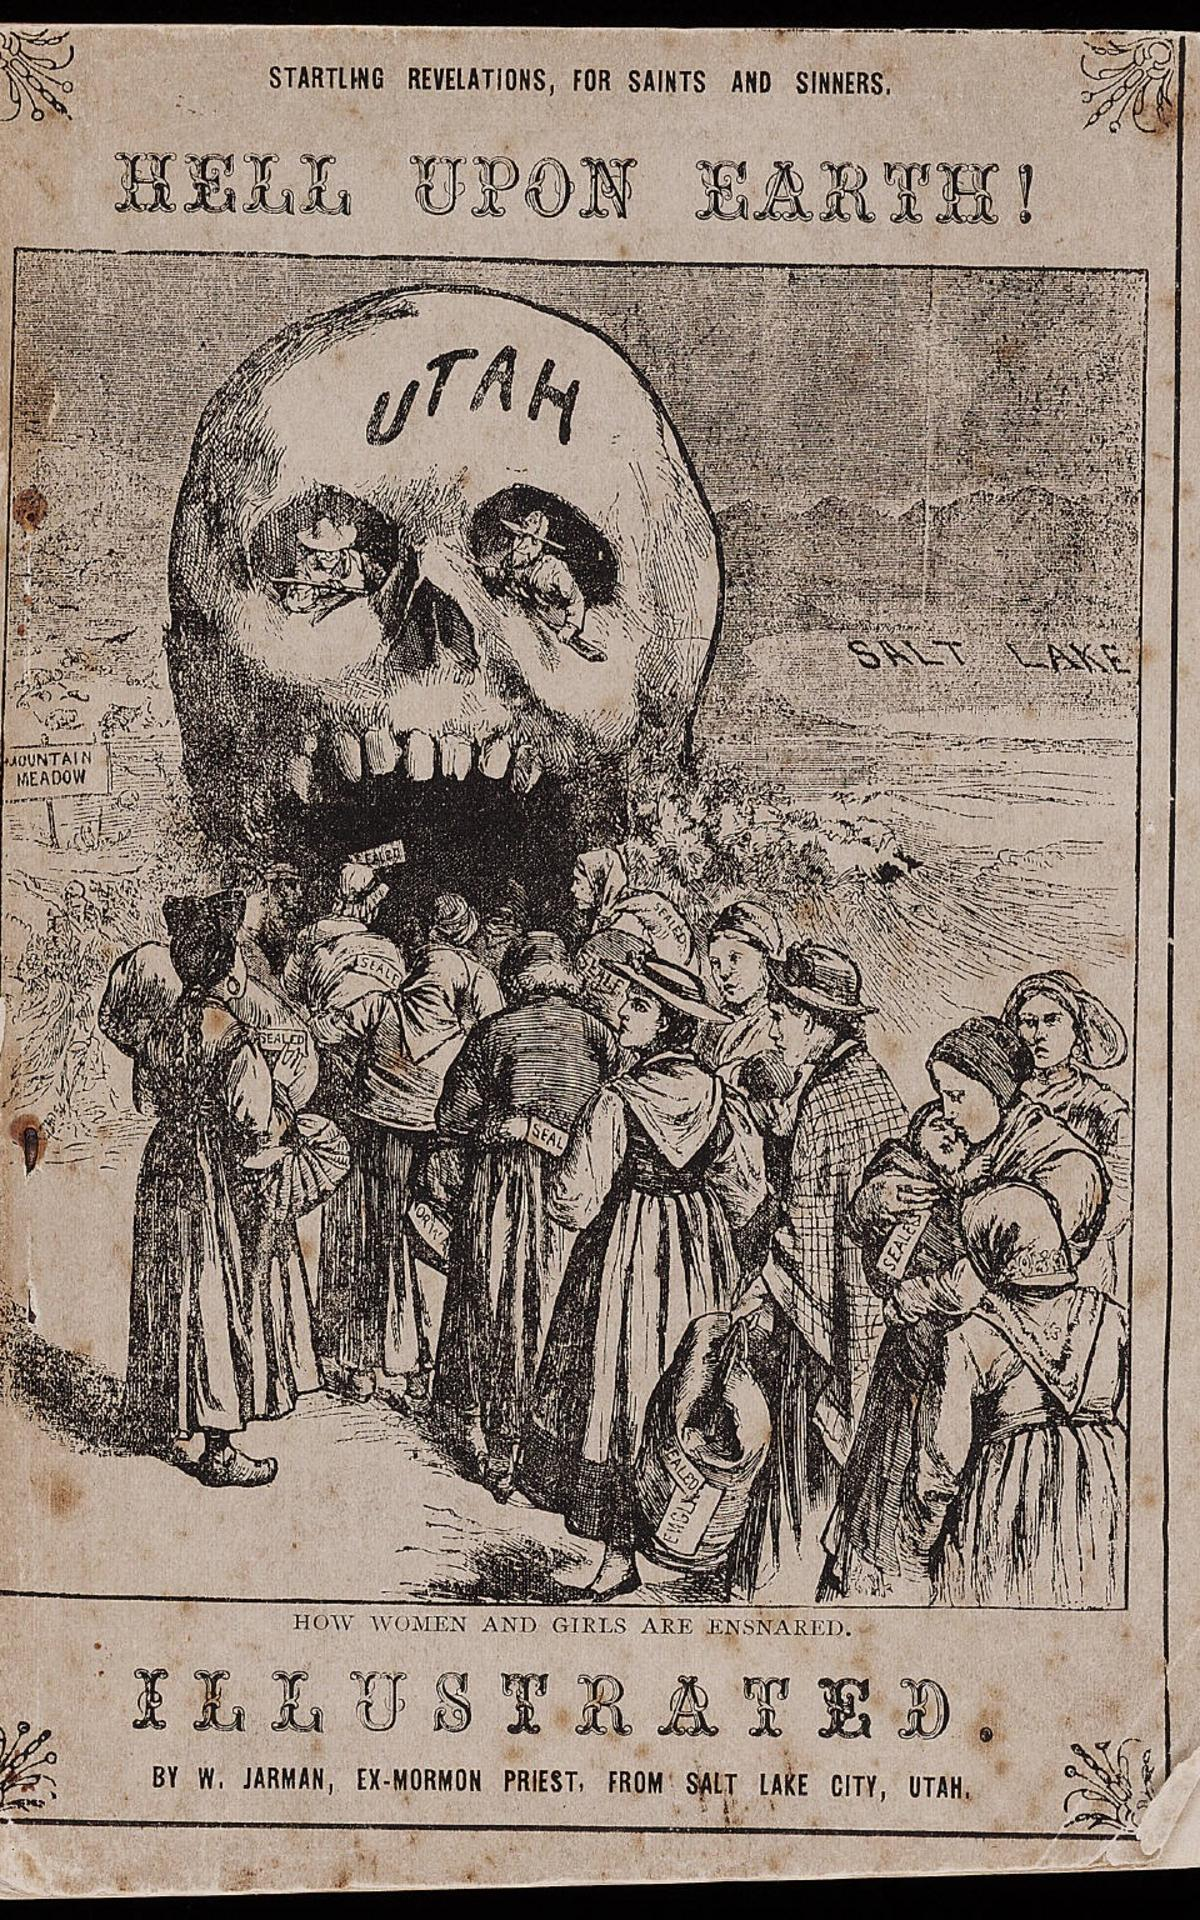 The cover of one of William Jarman's publications